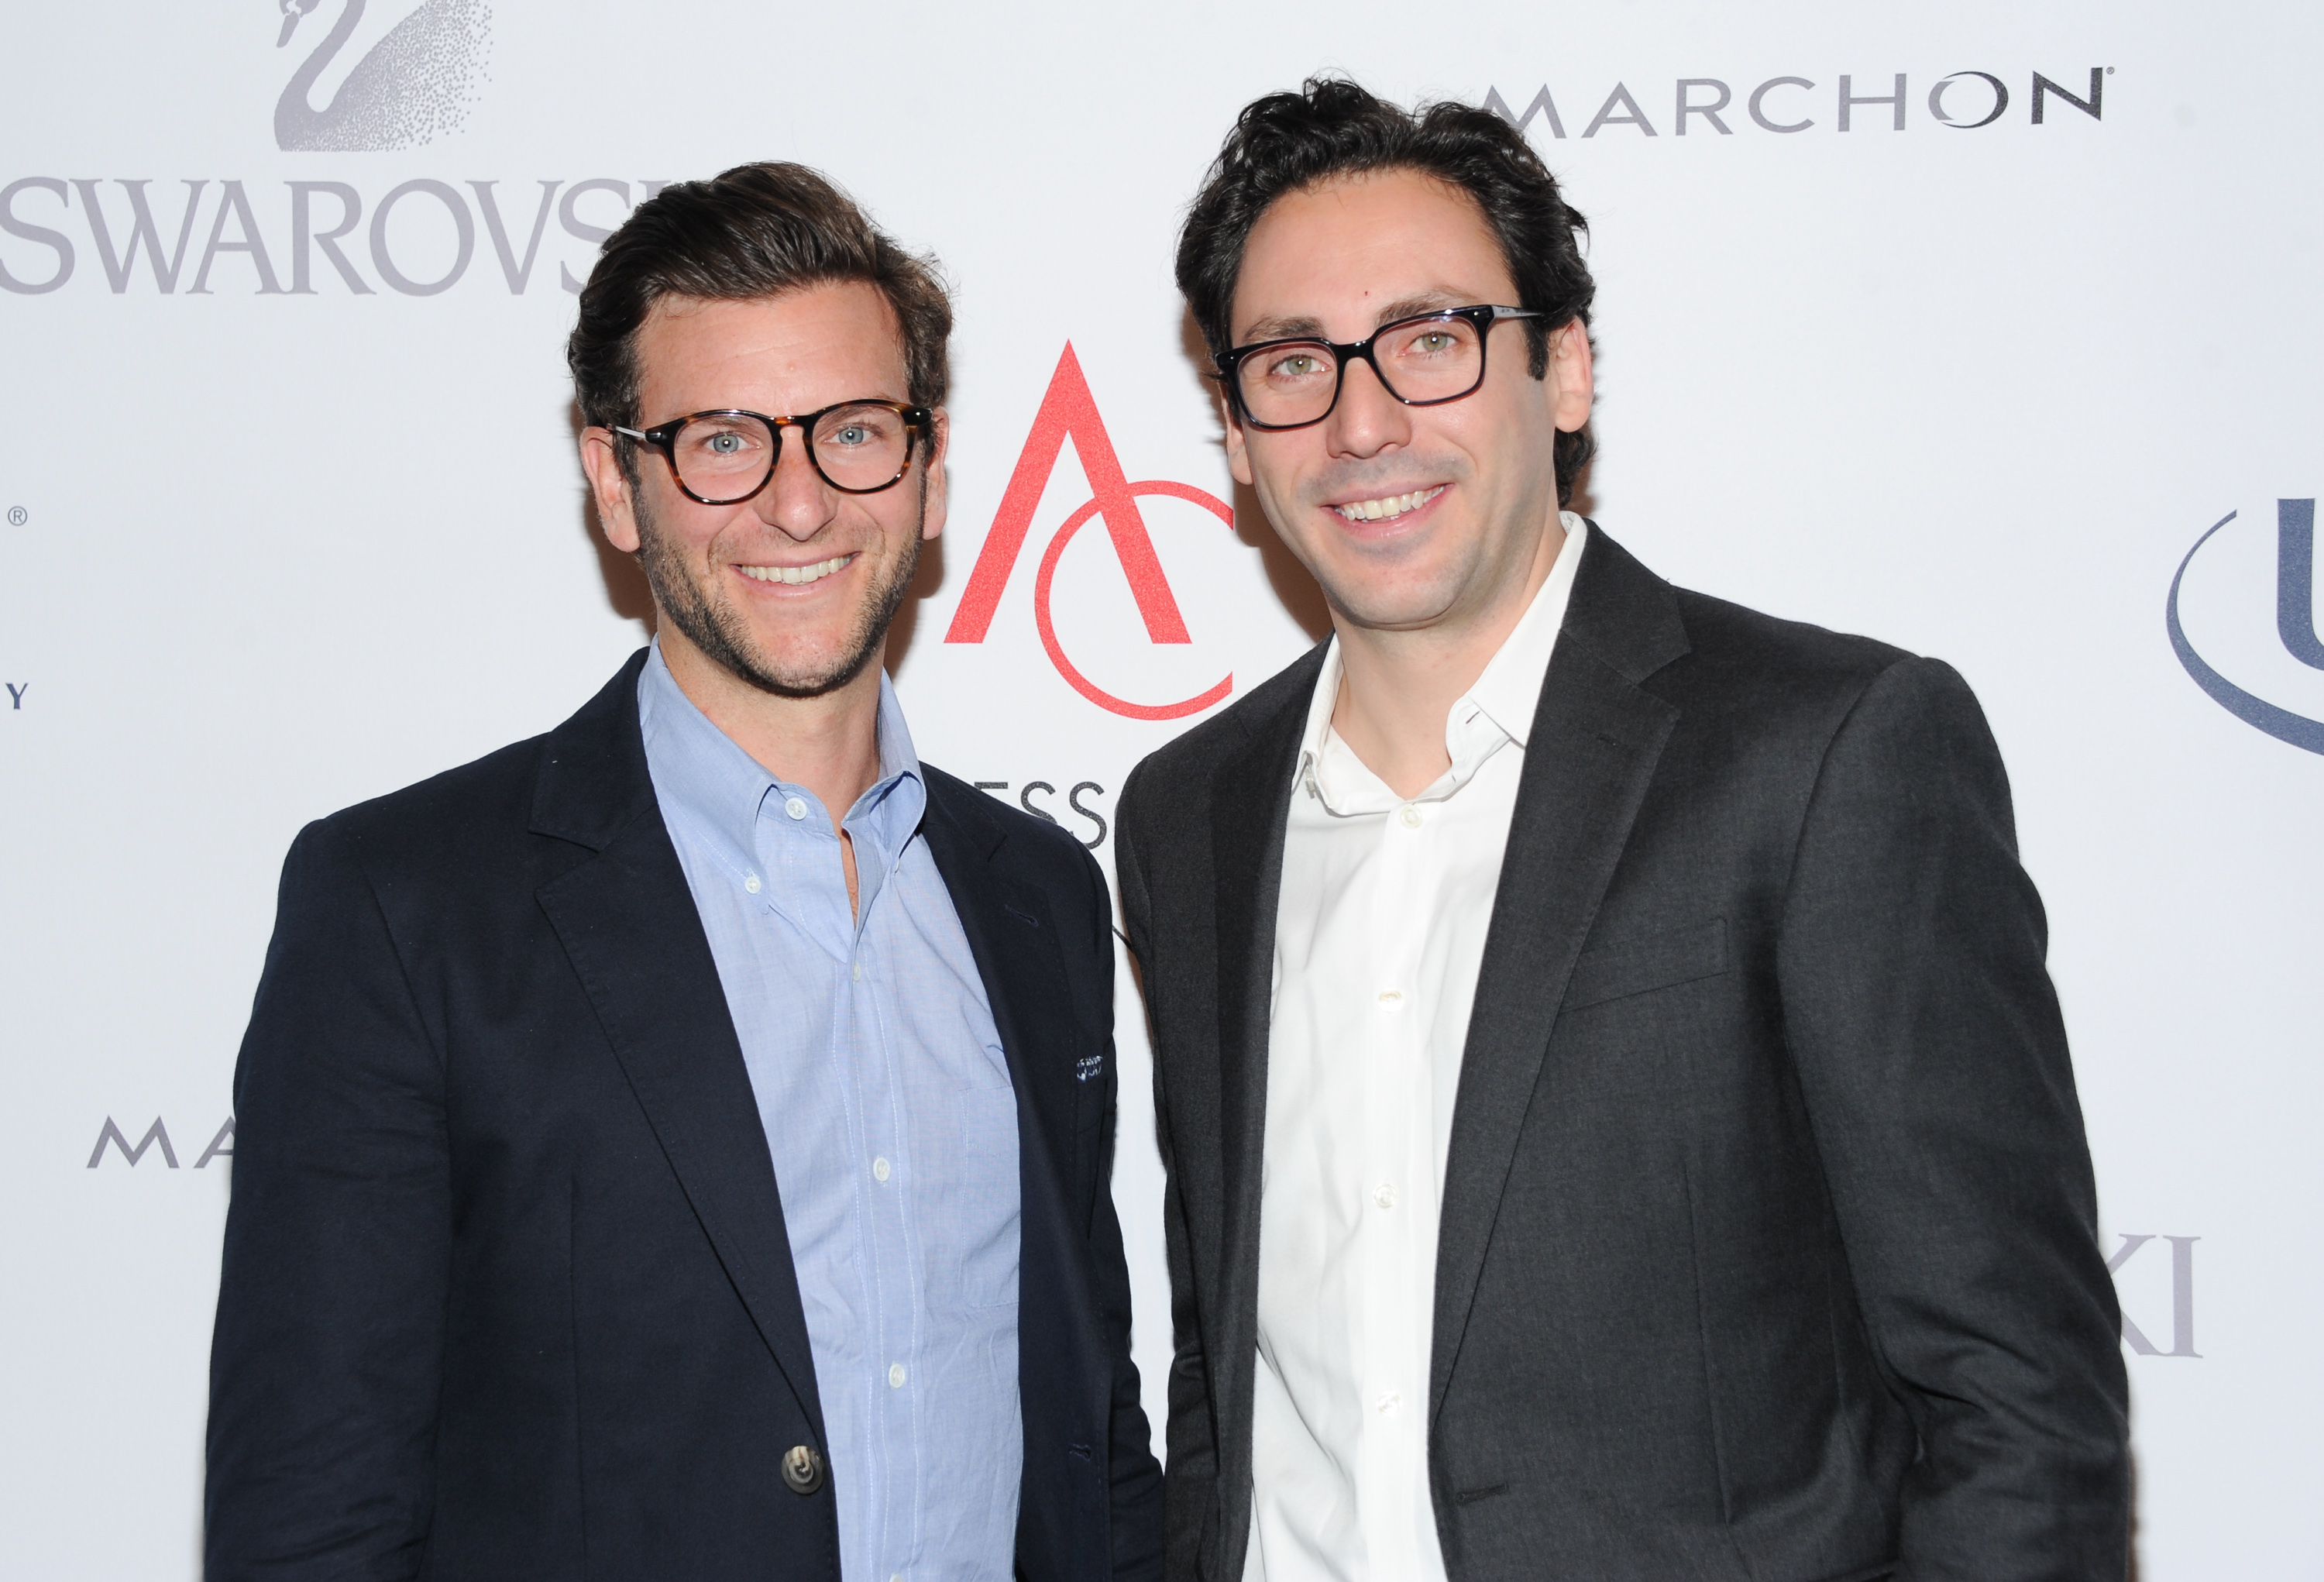 Warby Parker founders David Gilboa (L) and Neil Blumenthal attend the 17th Annual ACE Awards in New York City on Nov. 4, 2013.